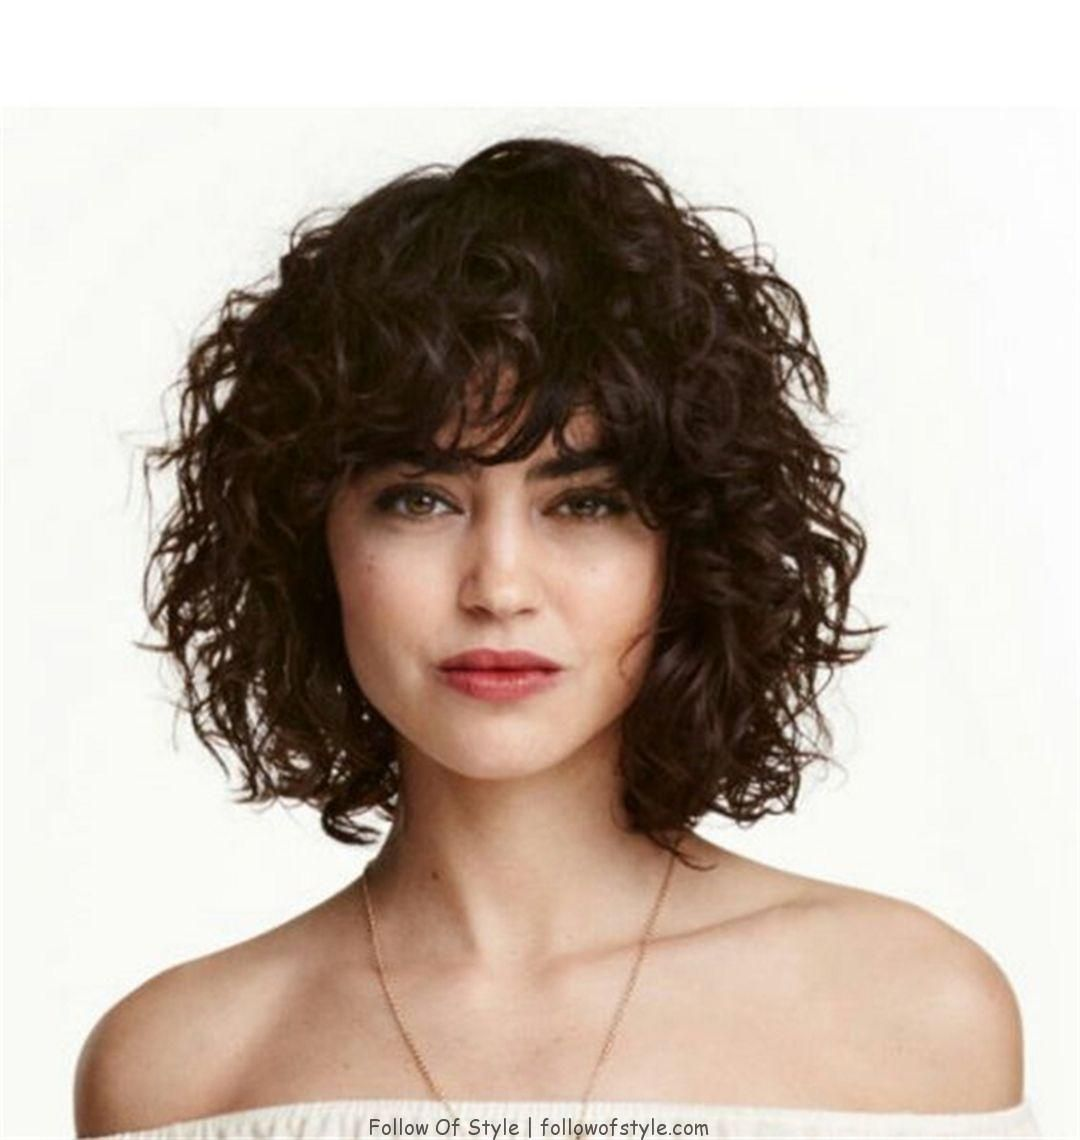 15 Chic Curly Hairstyles To Make You Look More Charming | Follow Of Style